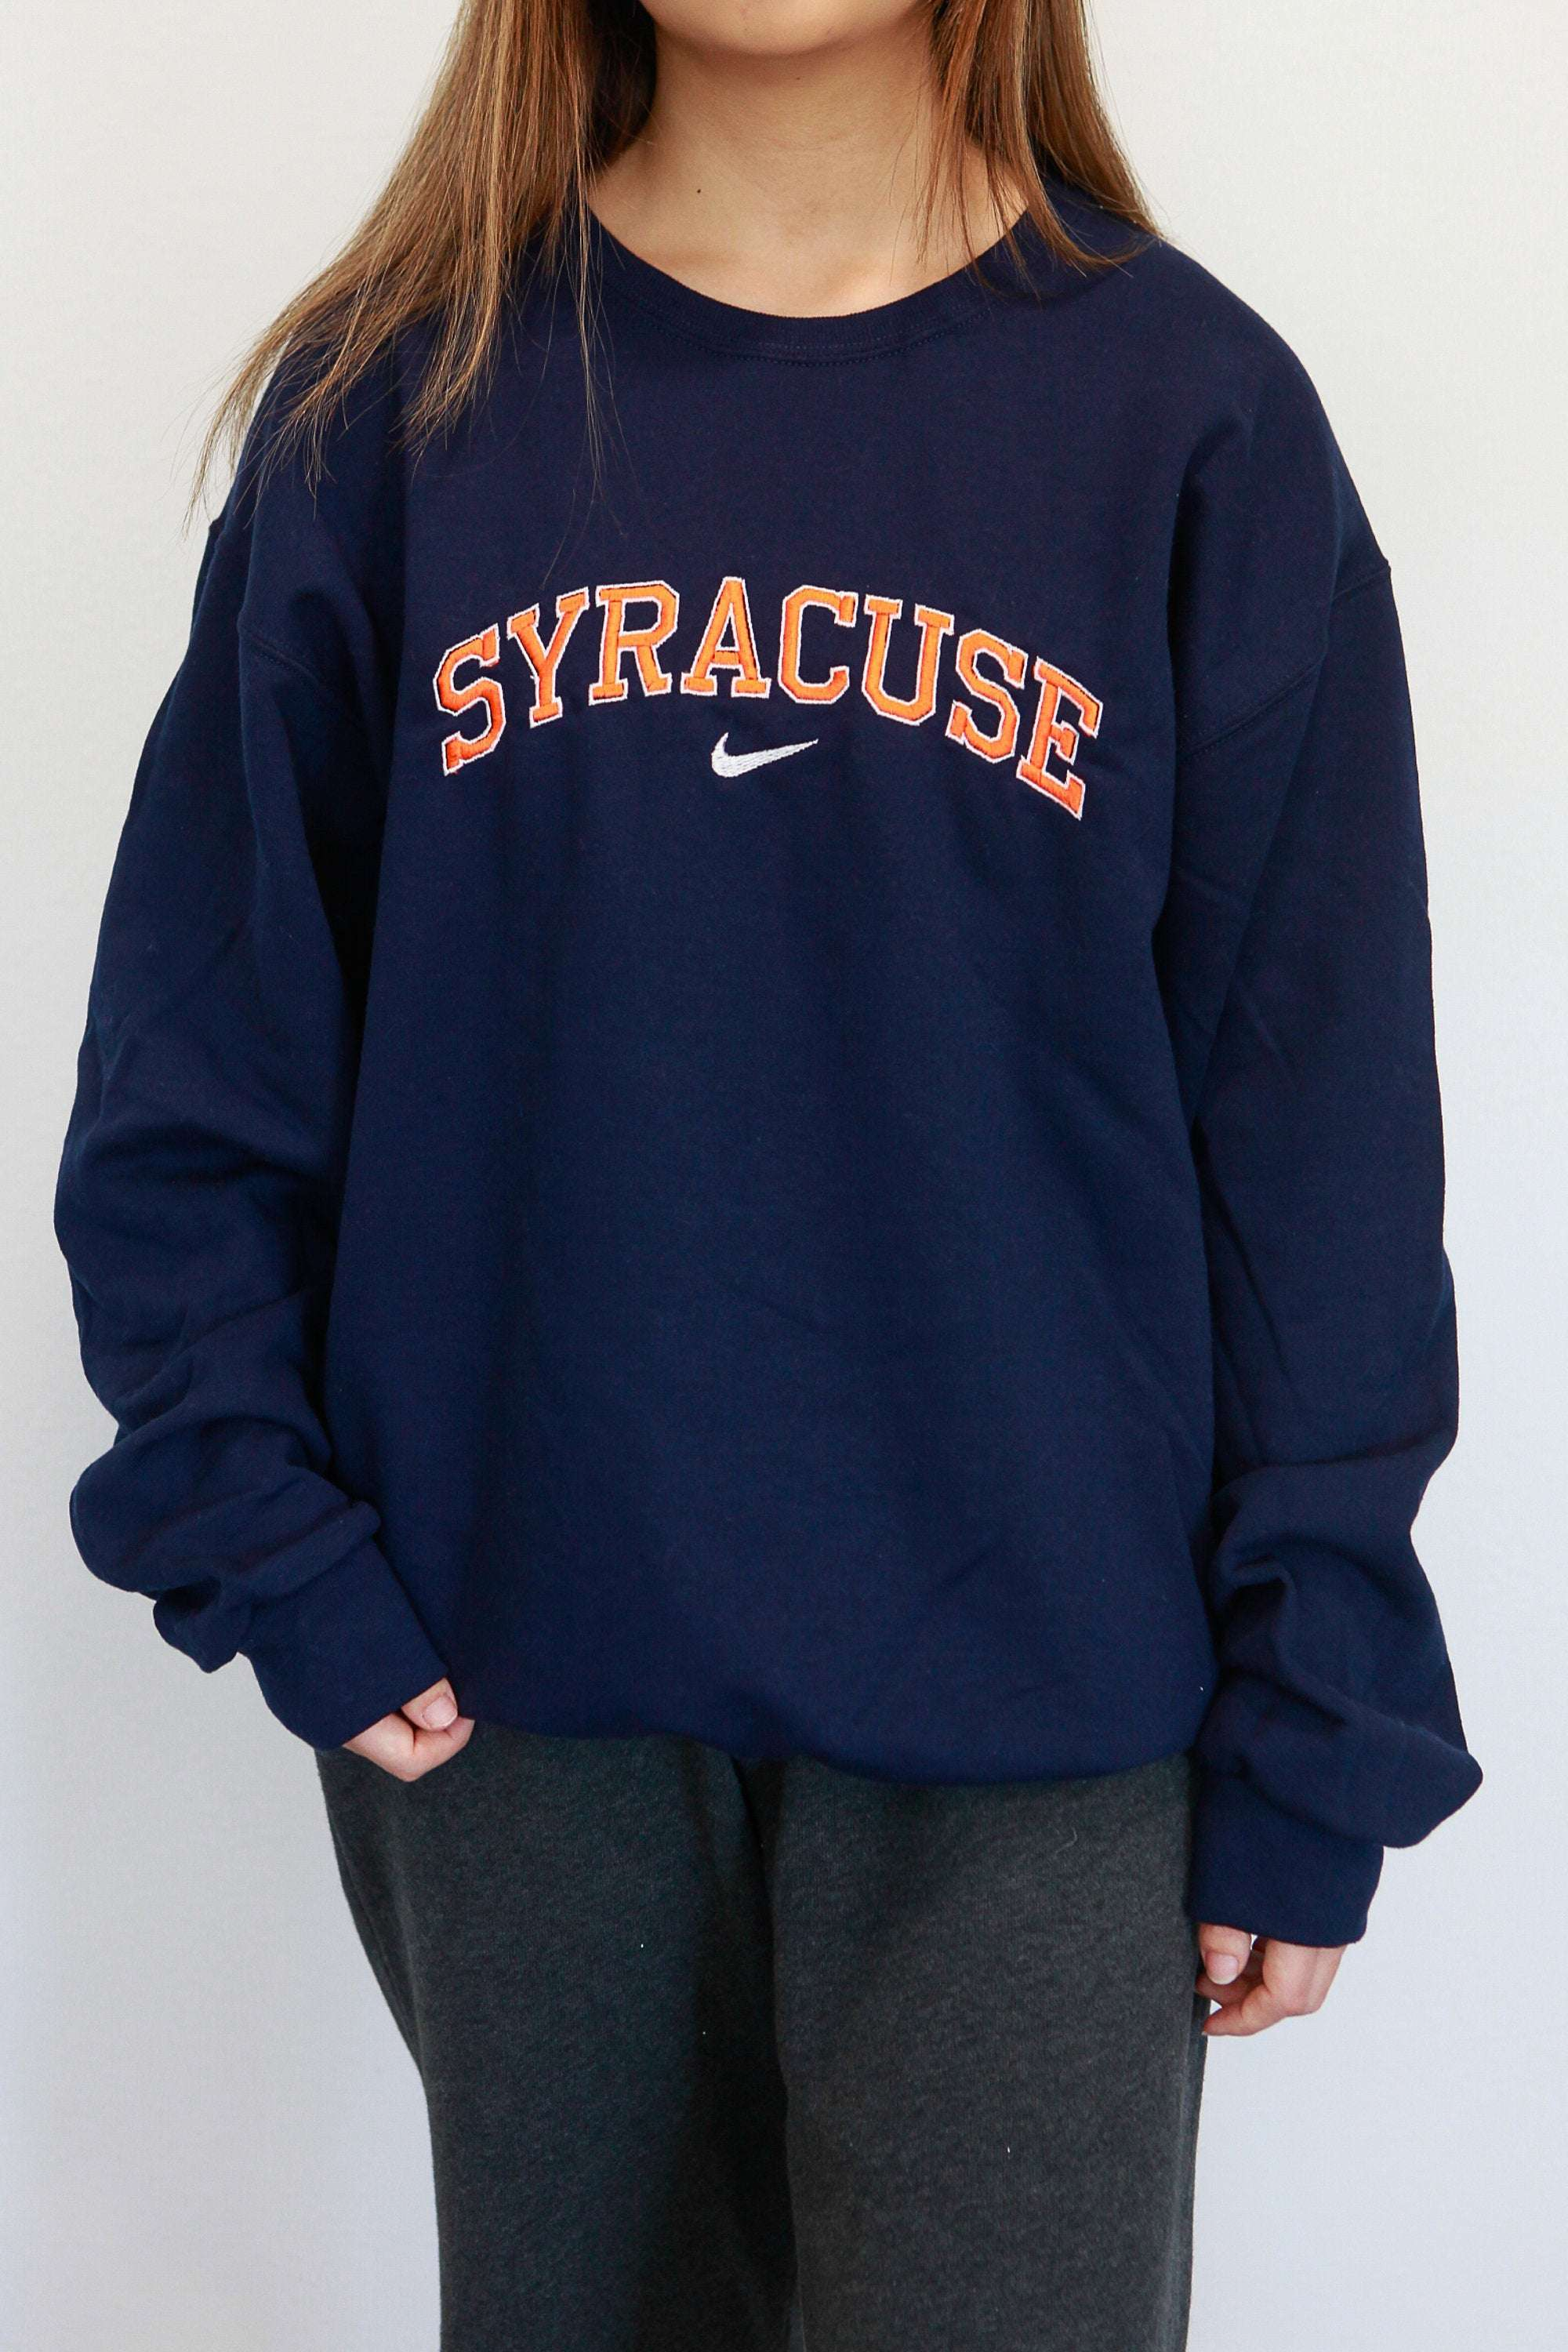 Syracuse Embroidered Embroidery